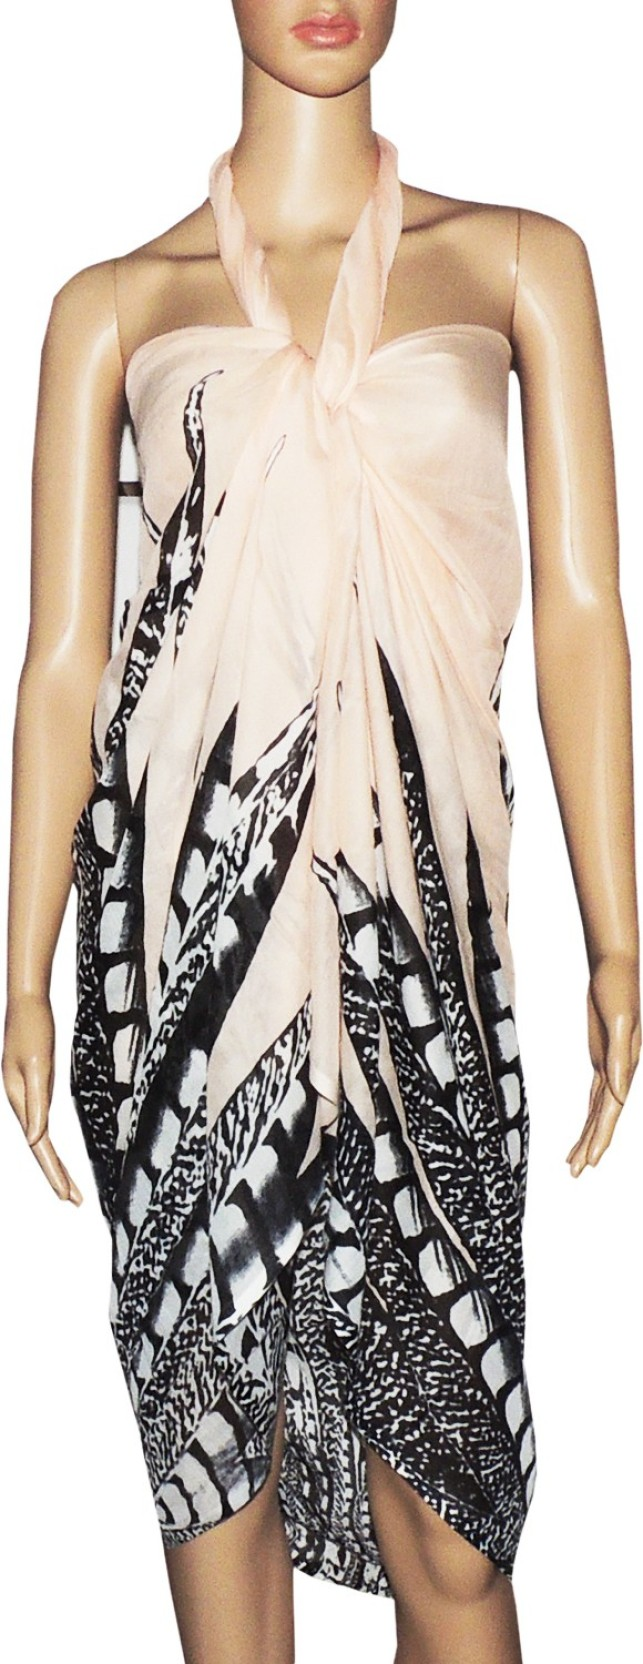 db40223f15 Indian Fashion Guru Printed Women's Sarong - Buy Multi Indian ...